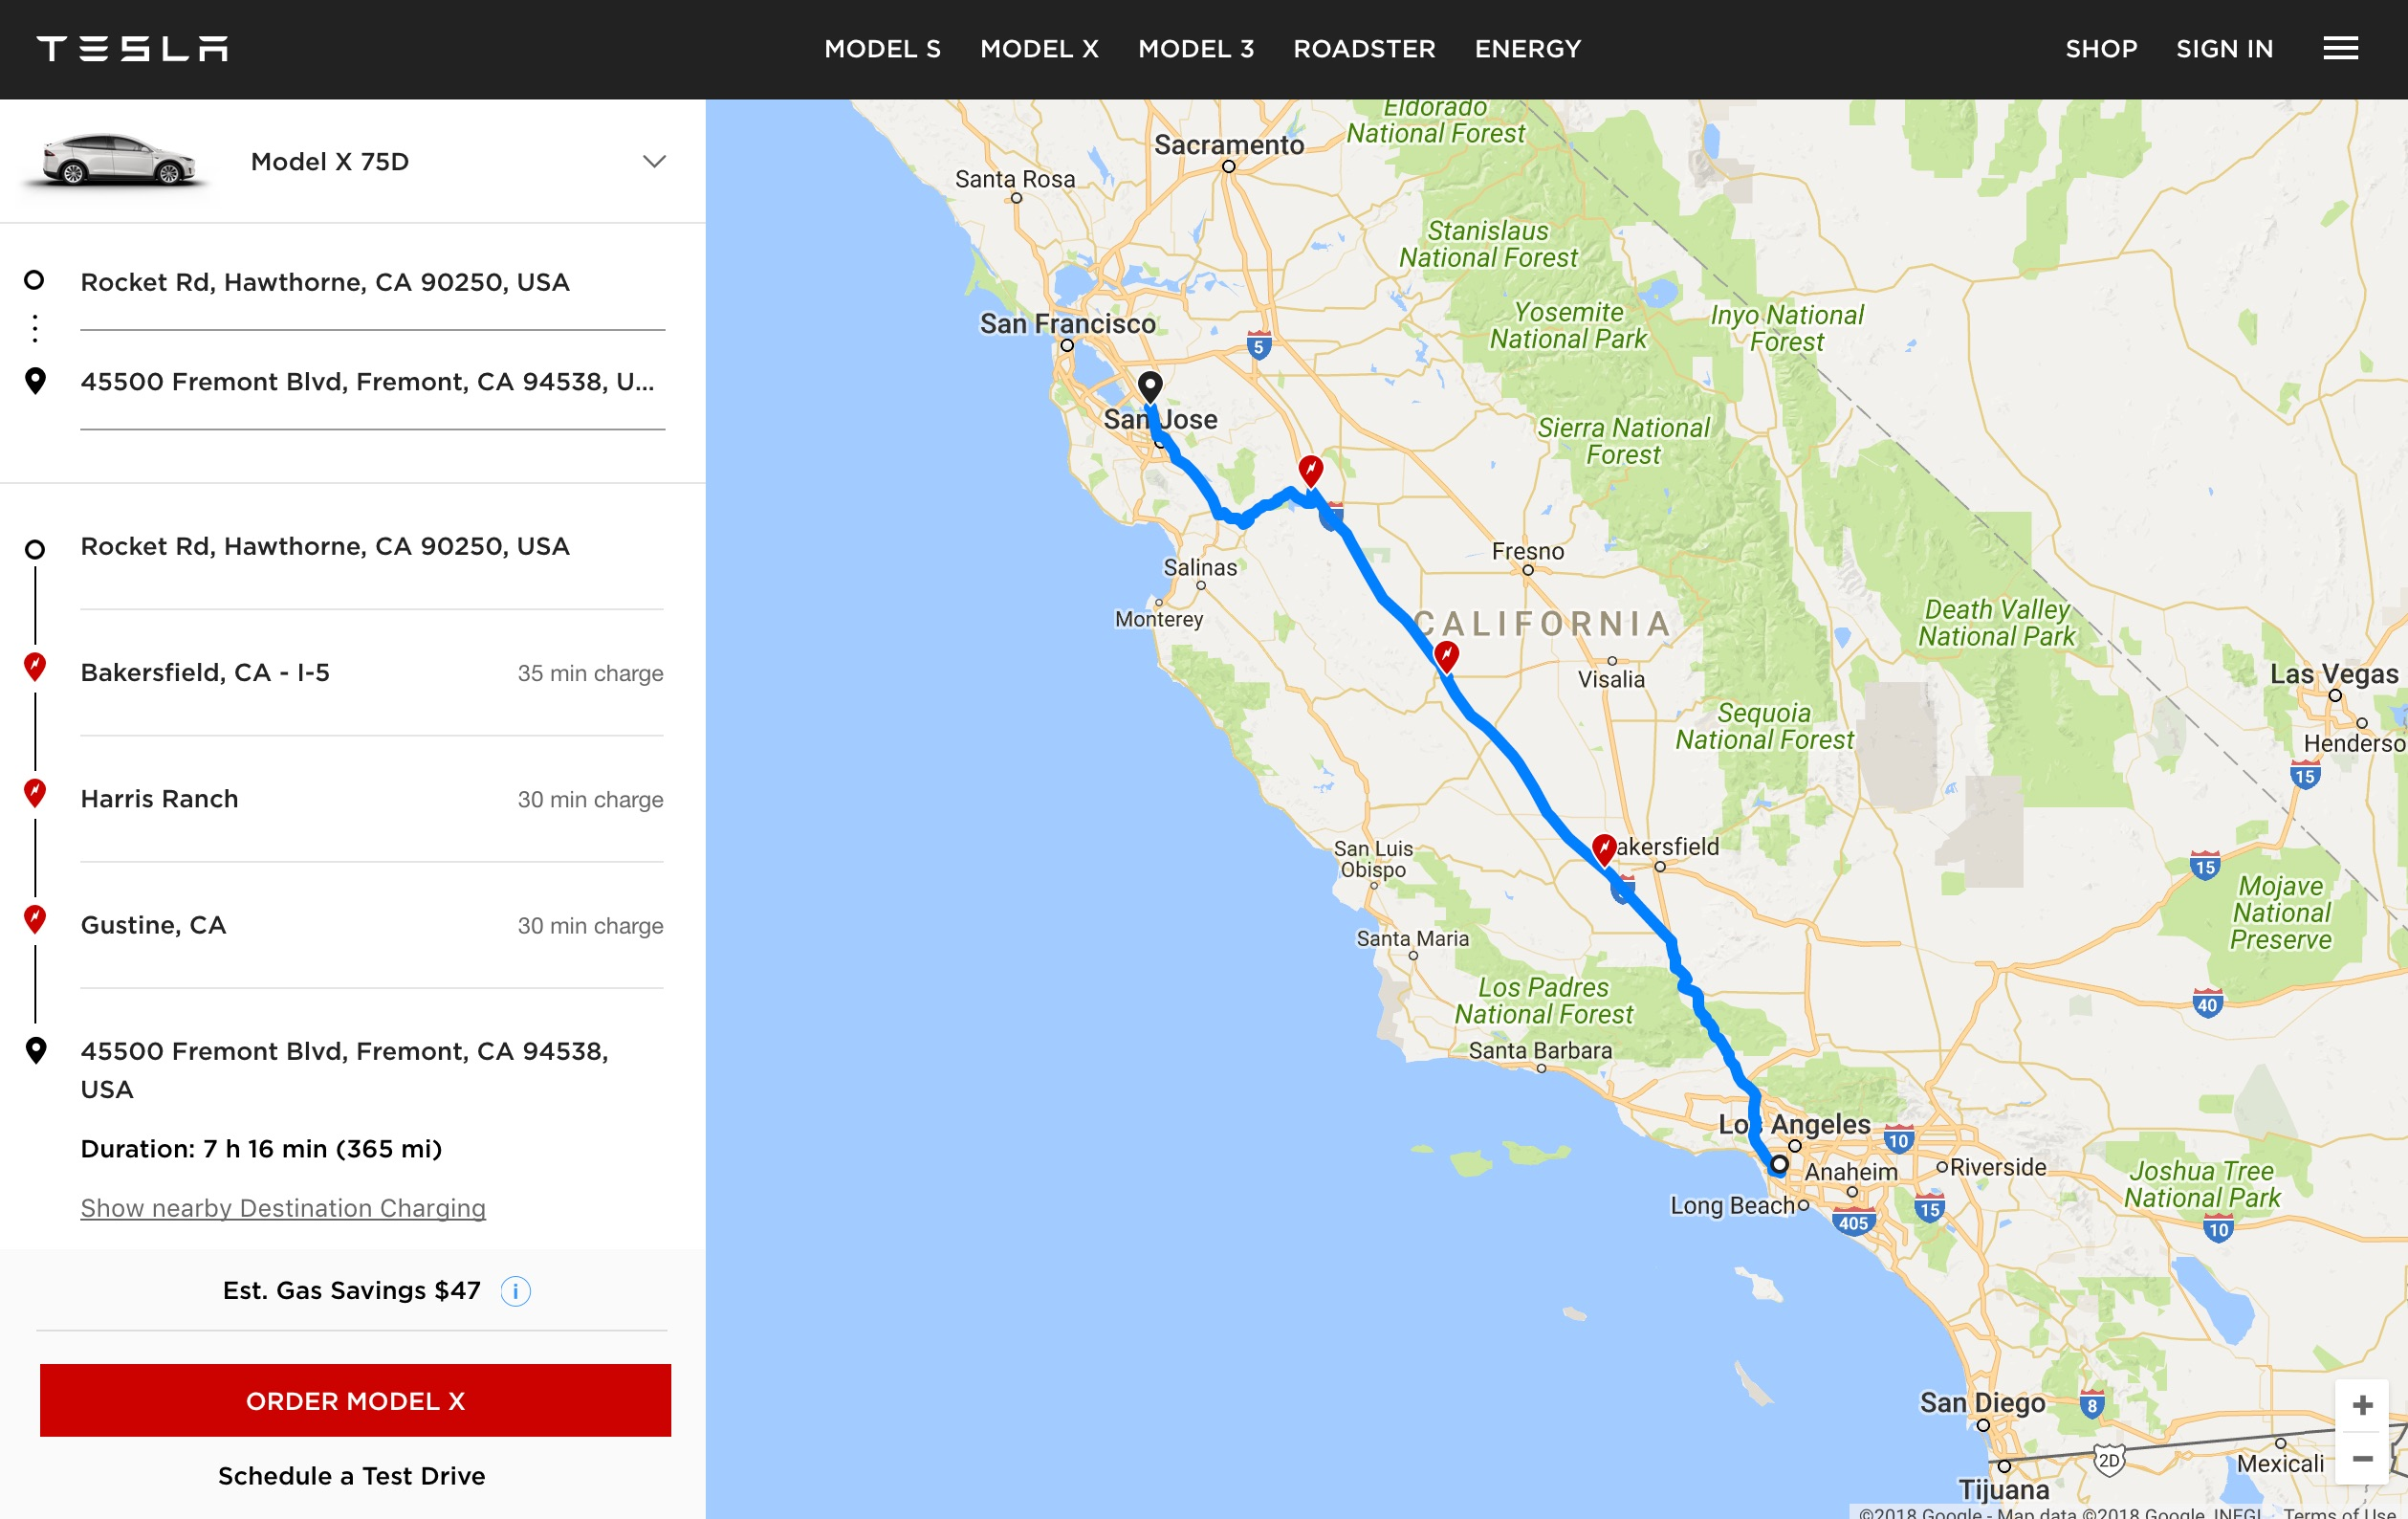 Tesla Launches Ev Trip Planner Tool With Map Of Supercharger Locations